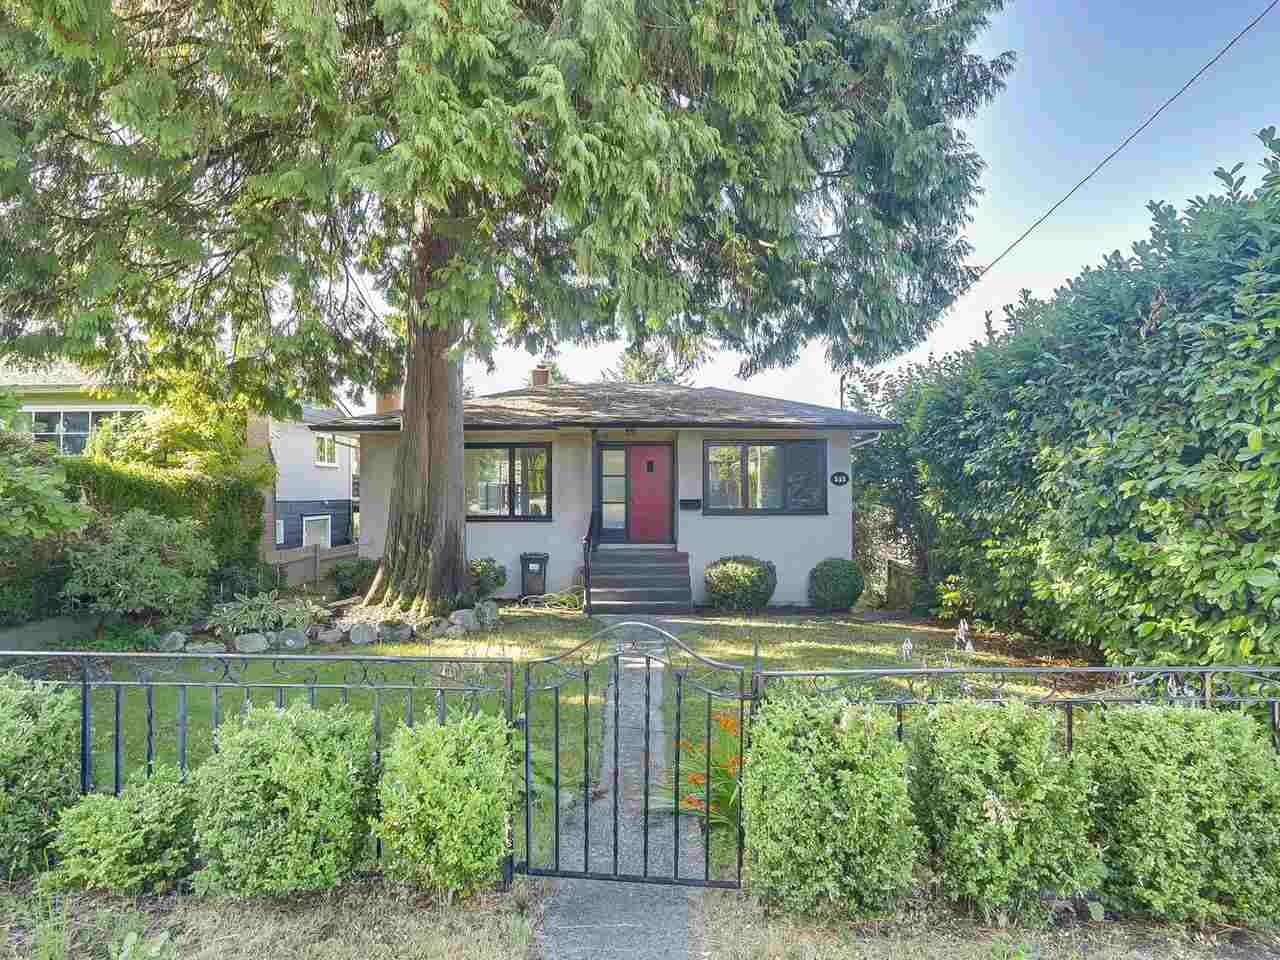 Charming bungalow with basement on a 50 X 122 foot lot centrally located in one of North Vancouver's most prestigious areas. Peekaboo city views from the back deck and mountain views from the front. Large grassy backyard with driveway and carport with lots of room for parking and potential room for a laneway house. Walking distance from the shops at Edgemont Village, the new Delbrook Community Centre and lots of recreation nearby. Basement has potential to build a suite or use as a workshop. The large sunny deck has been updated in 2017. Lots of options to use this home as a starter home, renovate, or land to redevelop.